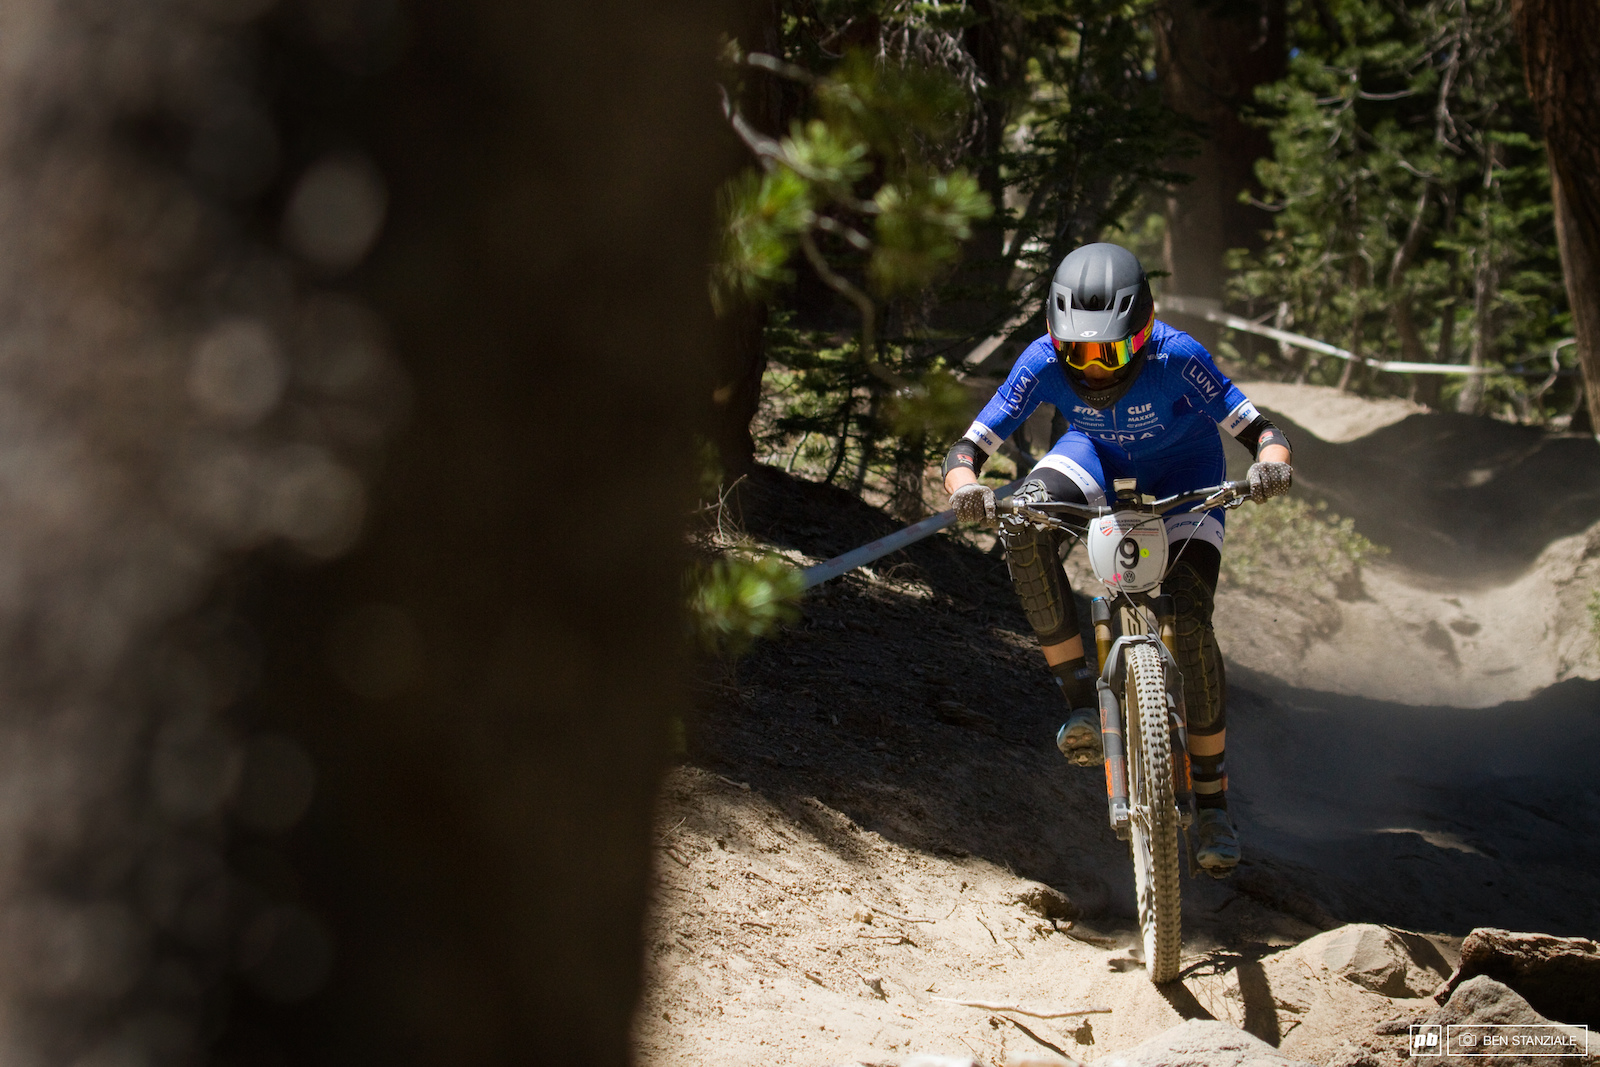 Georgia Gould having herself a solid weekend at Mammoth. 2nd Place in Saturday s Short Track XC and she takes the 5th spot in Sunday s Enduro.